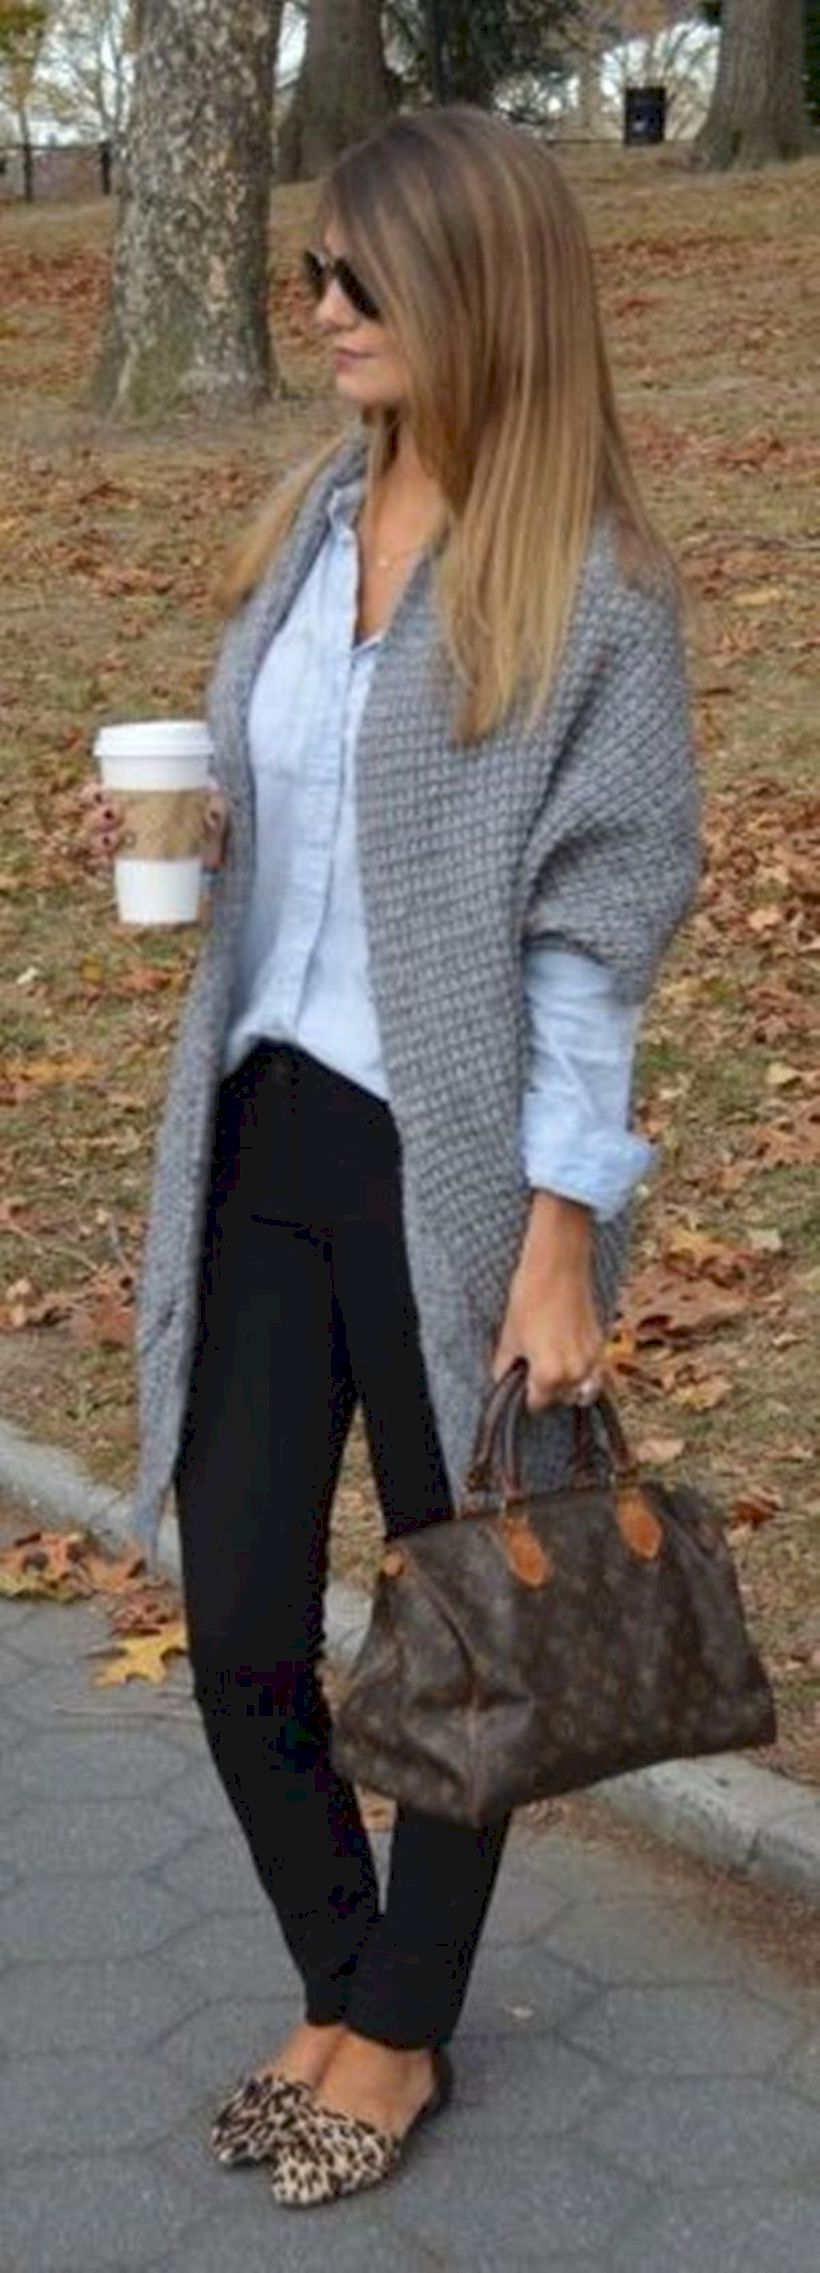 best fall outfit ideas with cardigans for women stitch fix